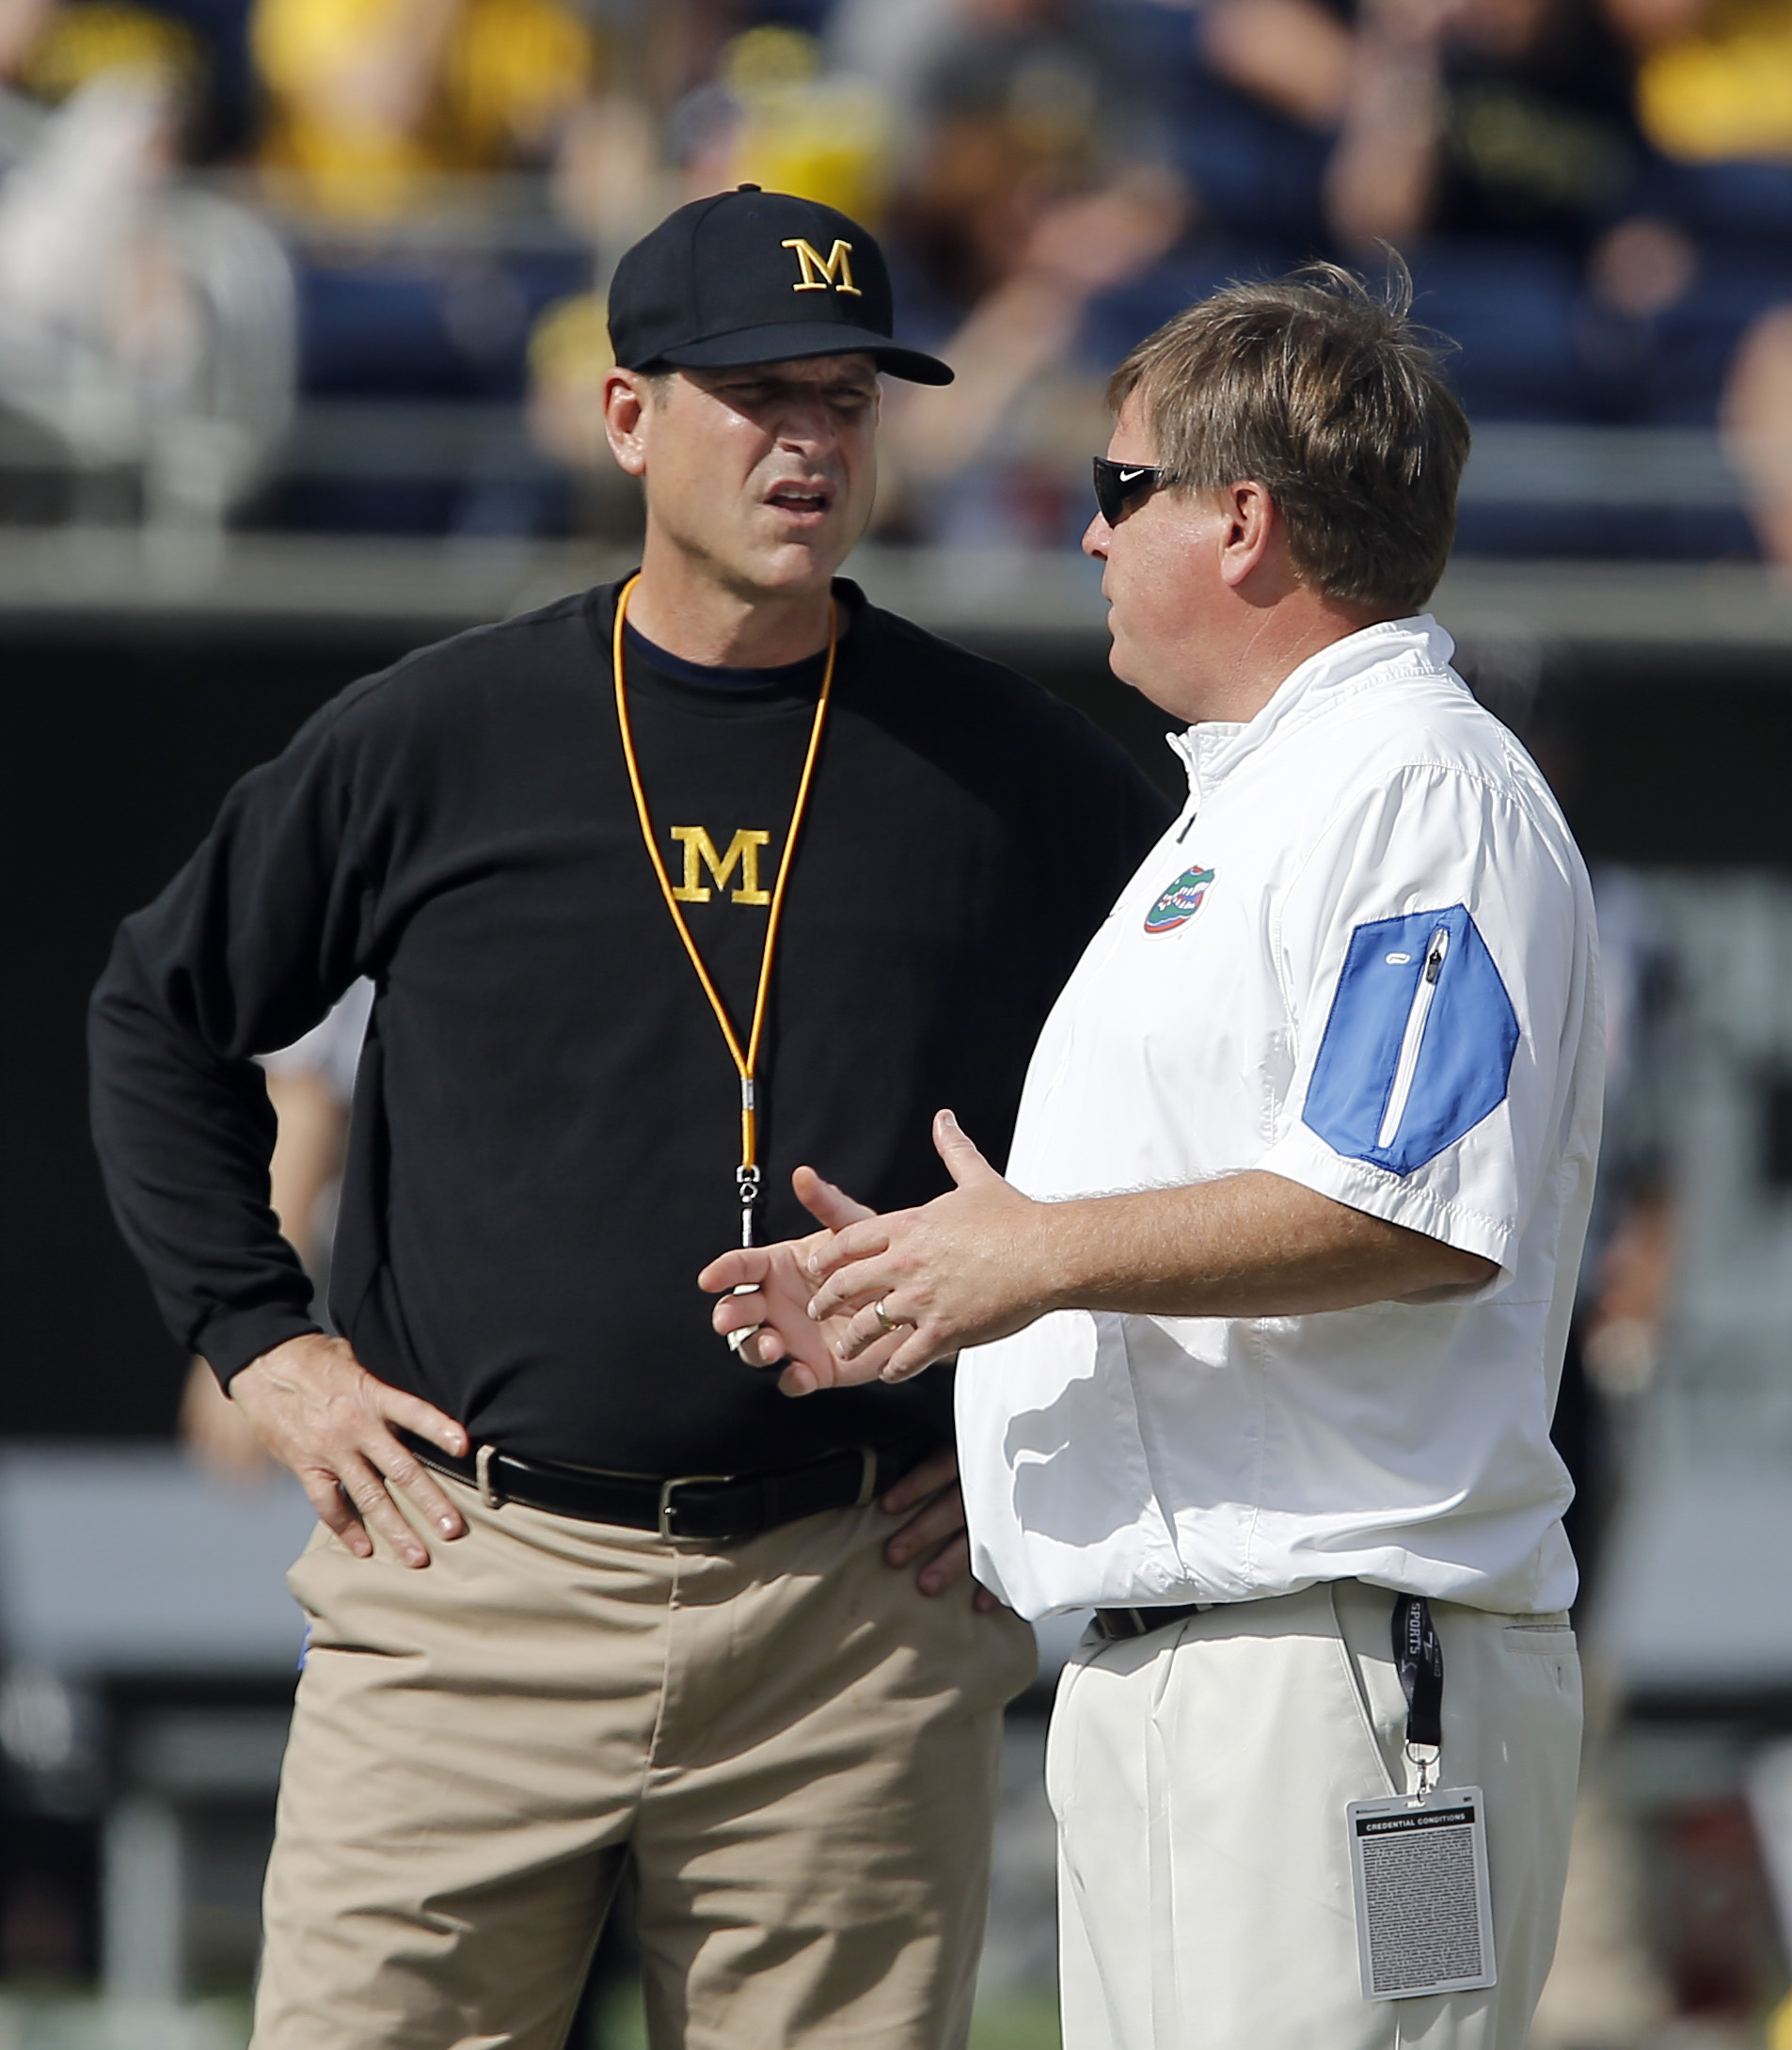 This is a picture of Jim Harbaugh and a Southern coach